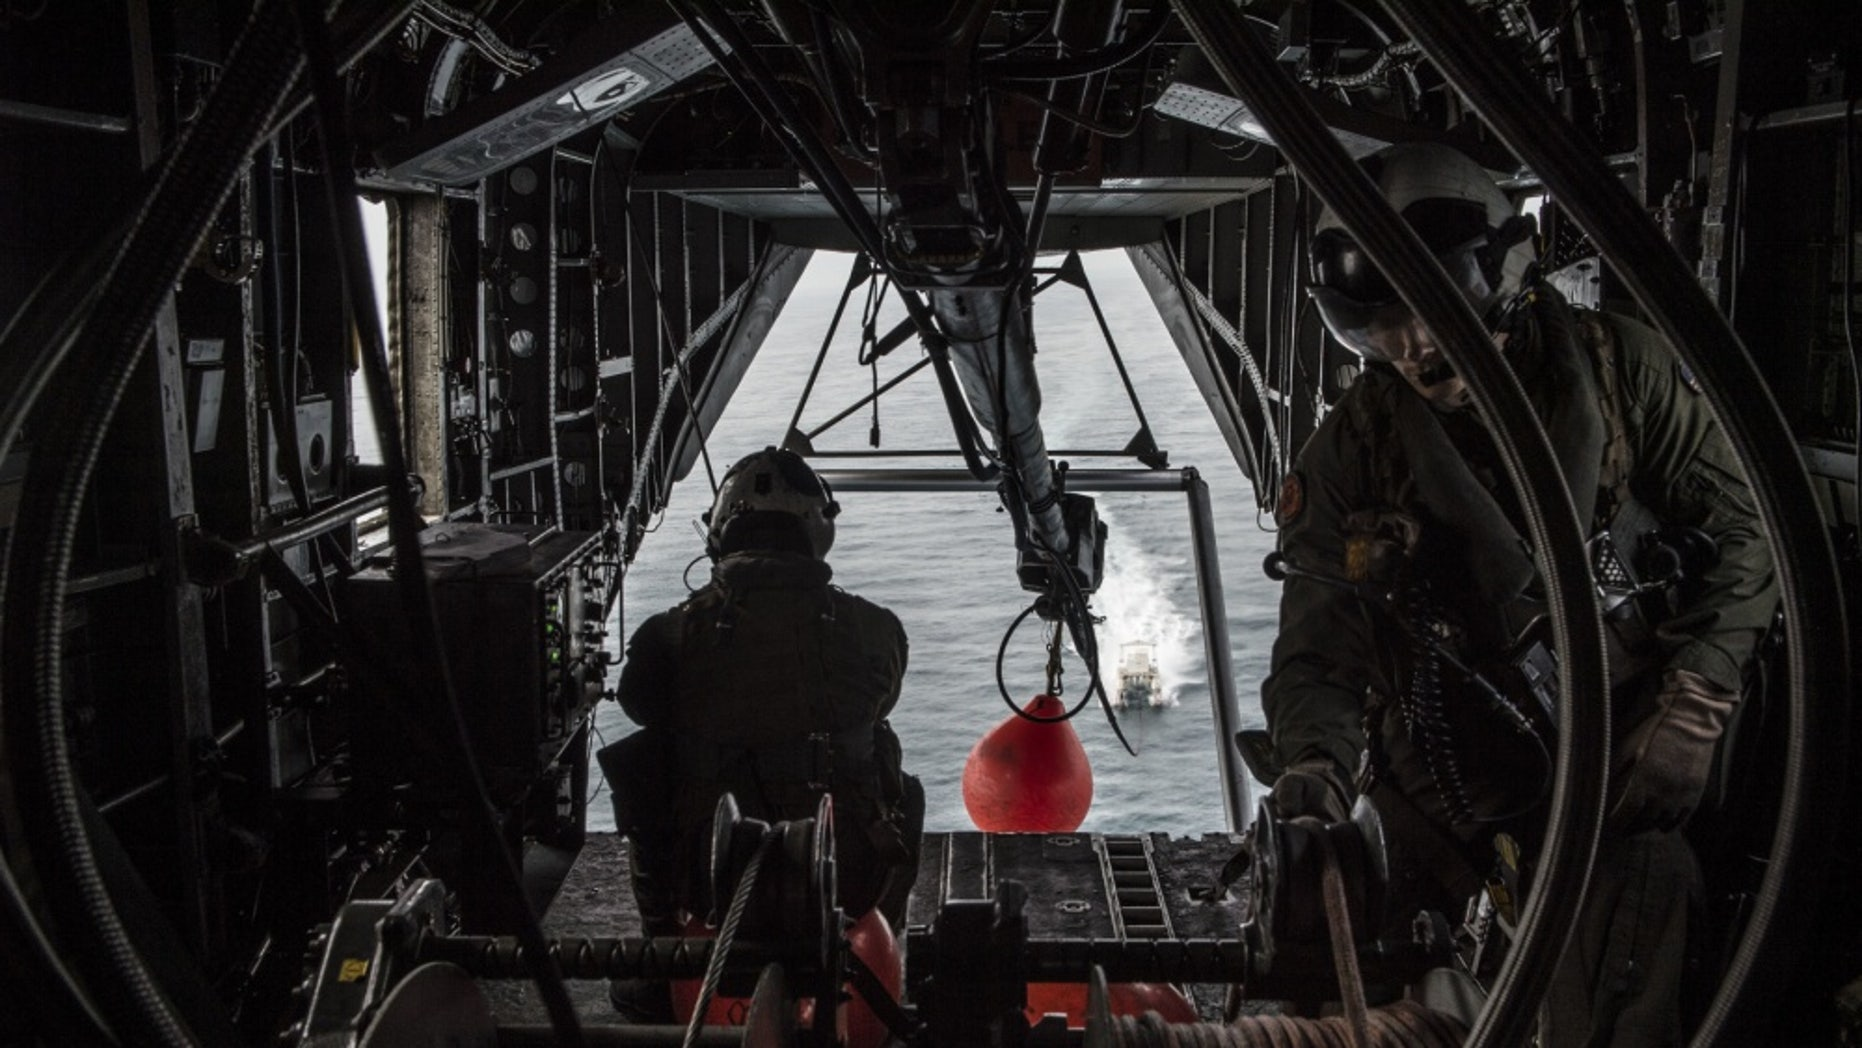 File photo - ARABIAN GULF (May 2, 2015) – Sailors assigned to the Blackhawks of Helicopter Mine Countermeasure Squadron (HM-15) monitor a tow line inside of a MH-53E Sea Dragon pulling an MK-105 Magnetic Influence Minesweeping System during mine countermeasure training operations aboard forward staging base (Interim) USS Ponce (AFSB(I)-15). (U.S. Navy photo by Mass Communication Specialist 1st Class Joshua Bryce Bruns/Released)